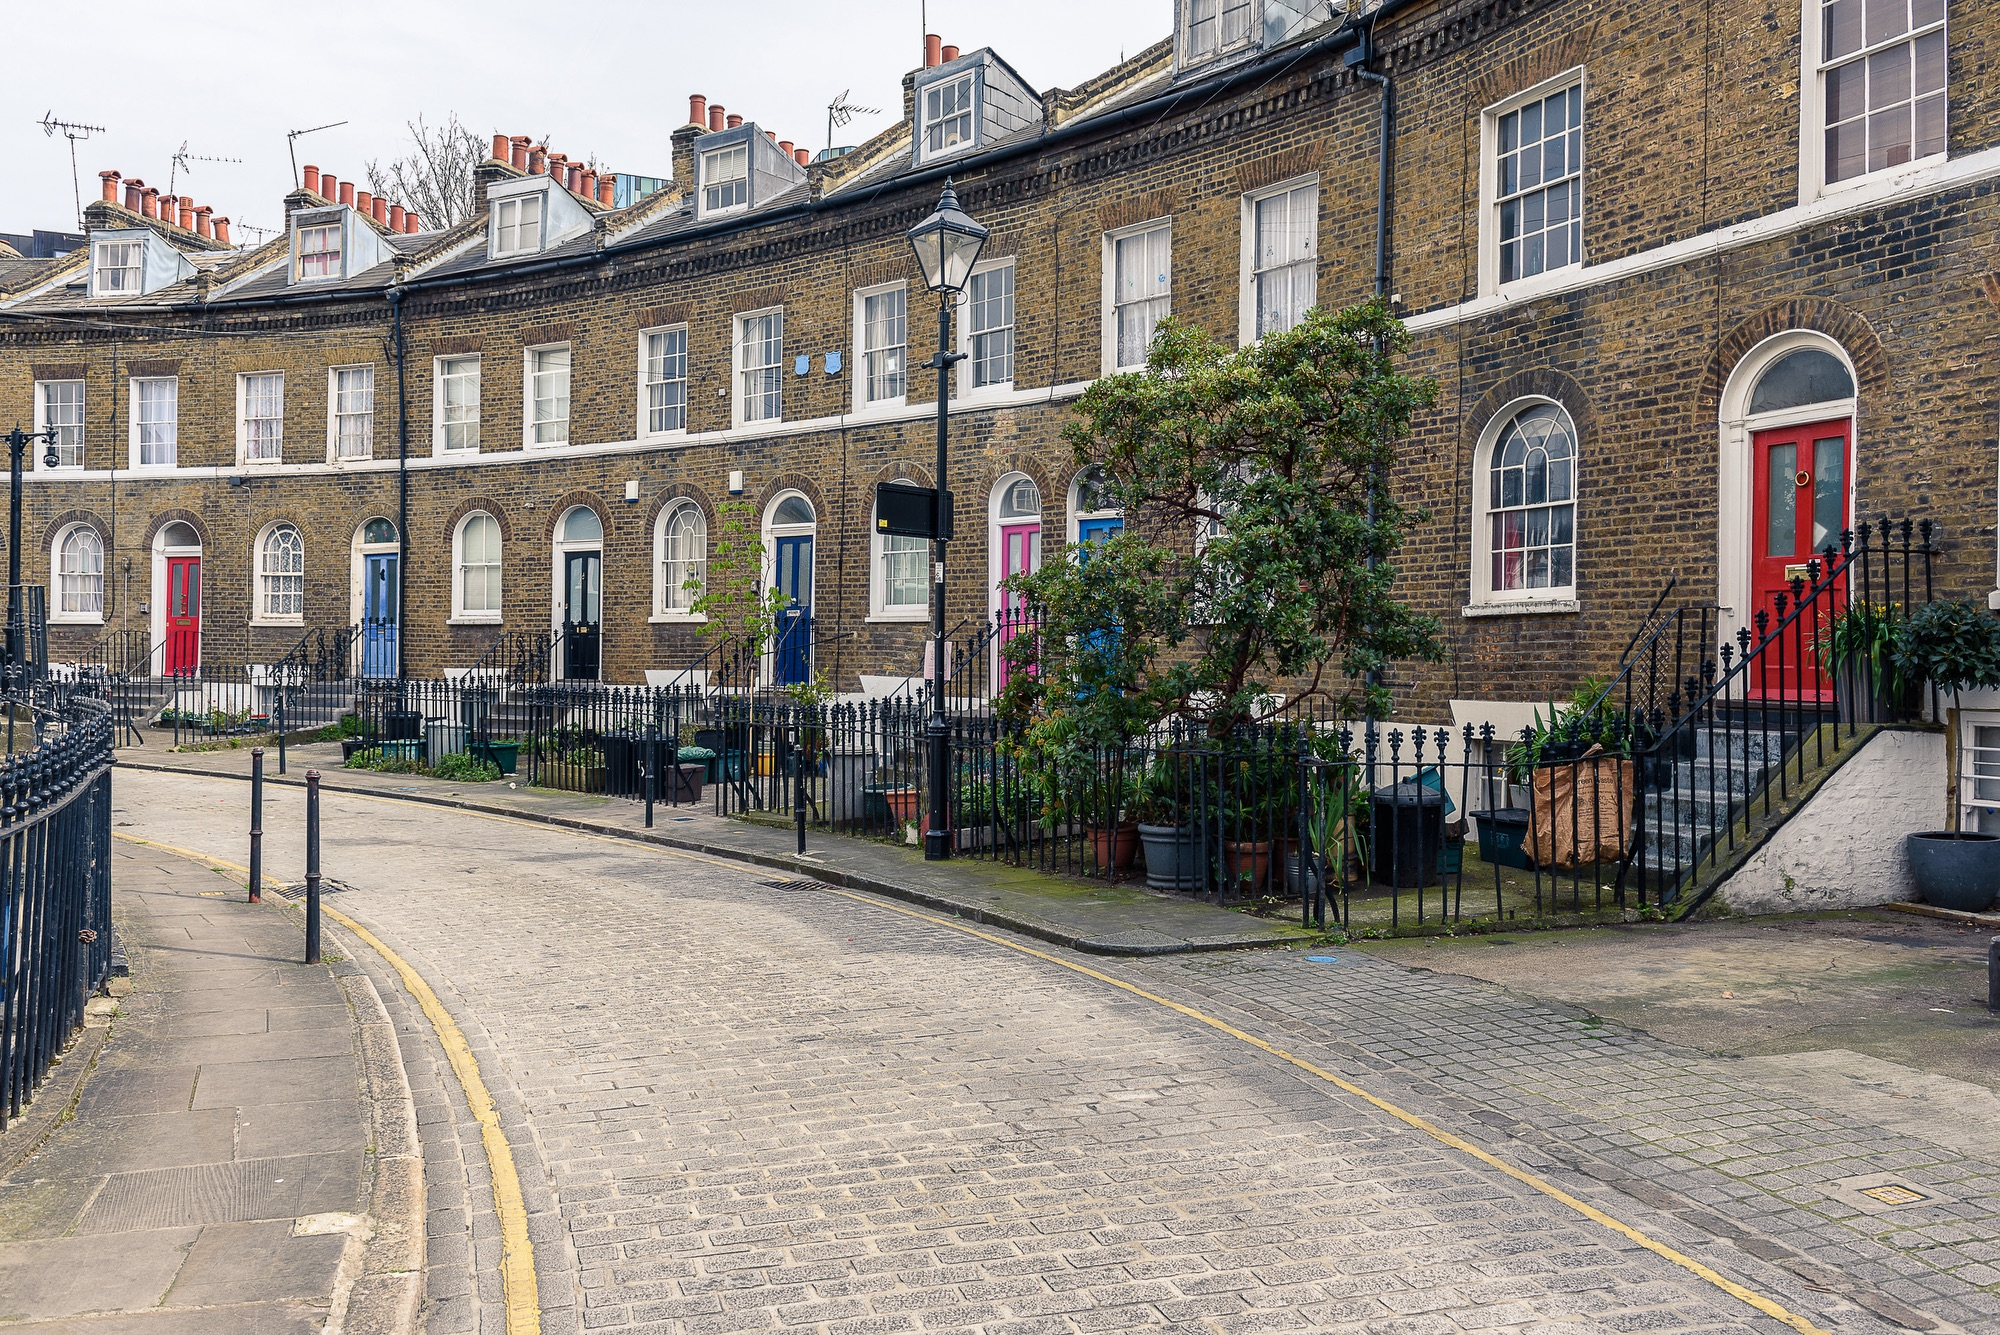 SS_A typical british road with houses in London, with colored doors and fireplaces on the roofs